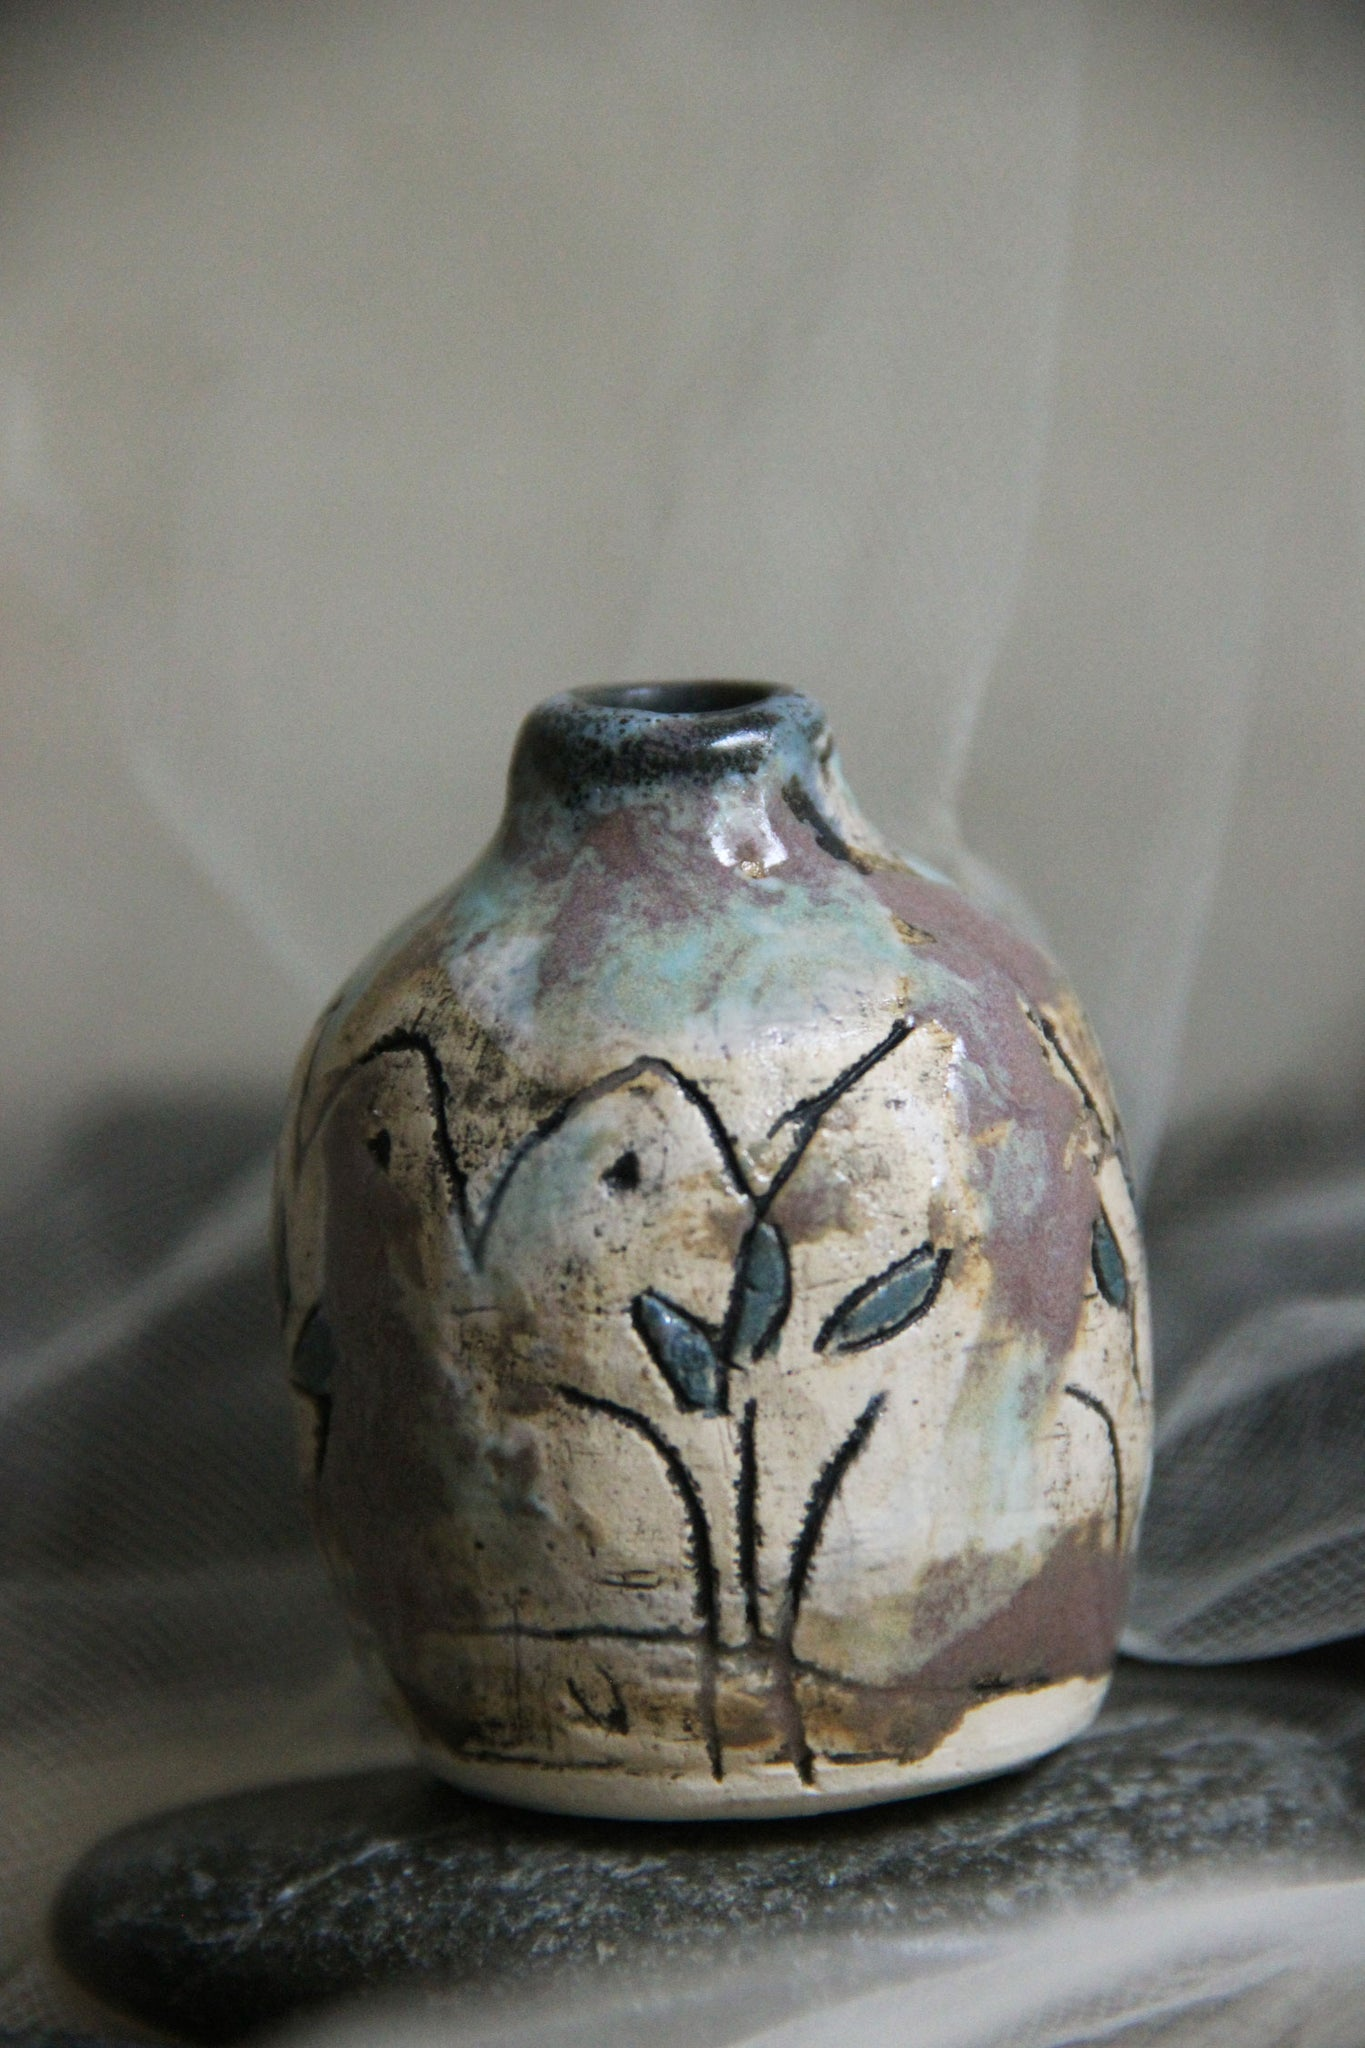 colorful-tiny-handmade-carved-stoneware-ceramic-bud-vase